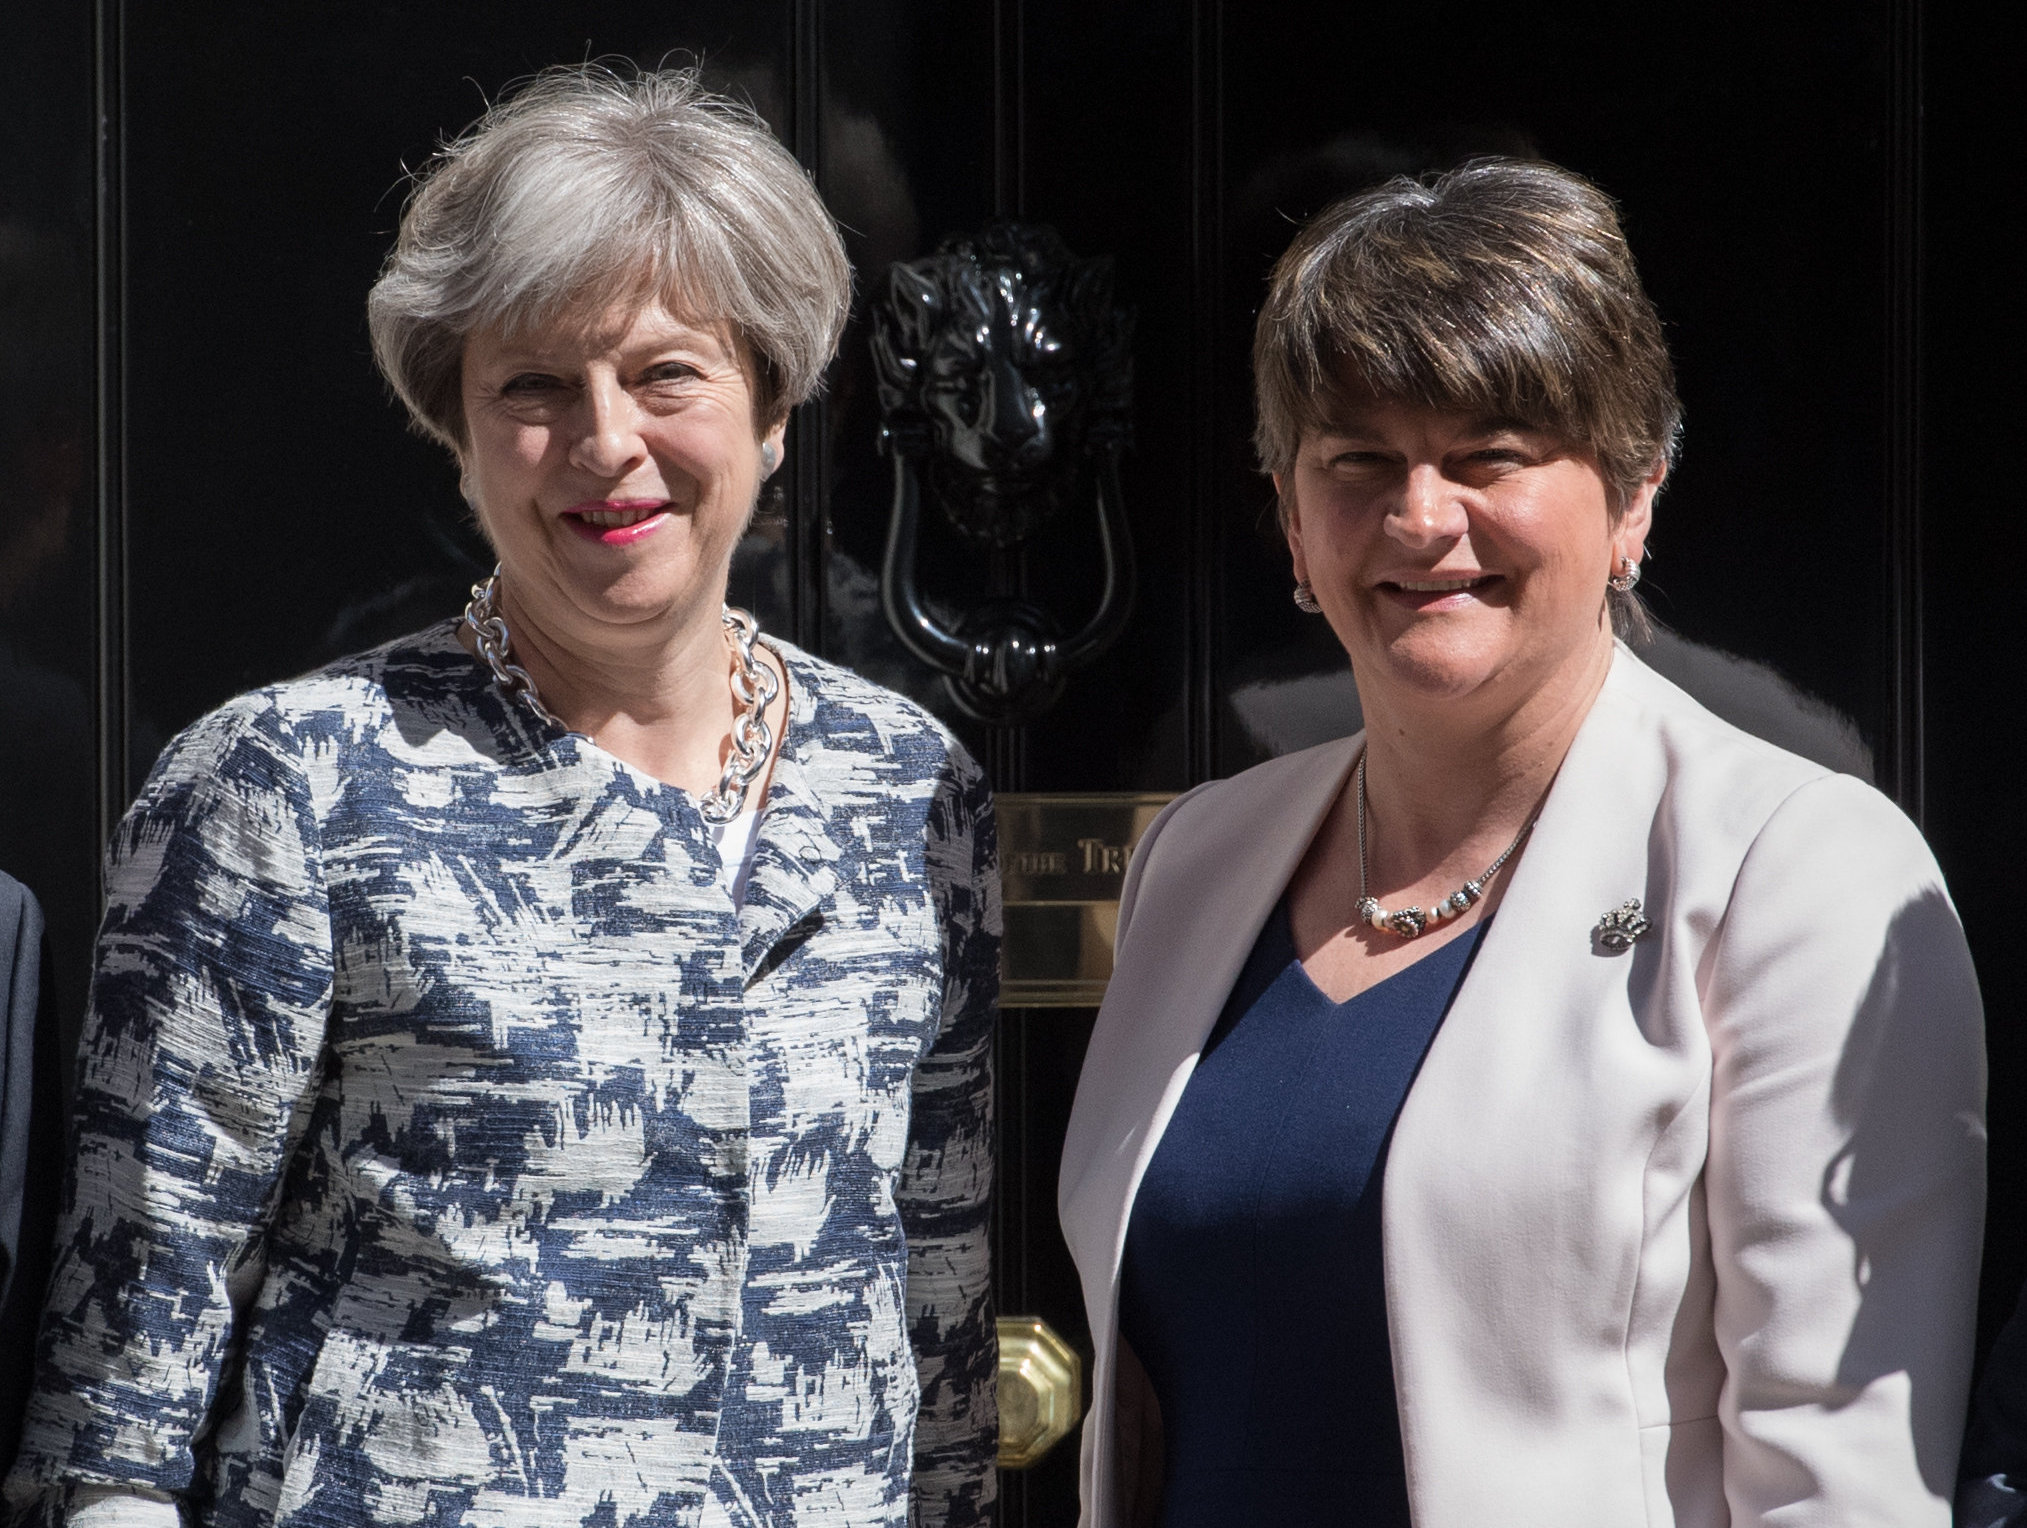 Prime Minister Theresa May with Arlene Foster, leader of the Democratic Unionist Party